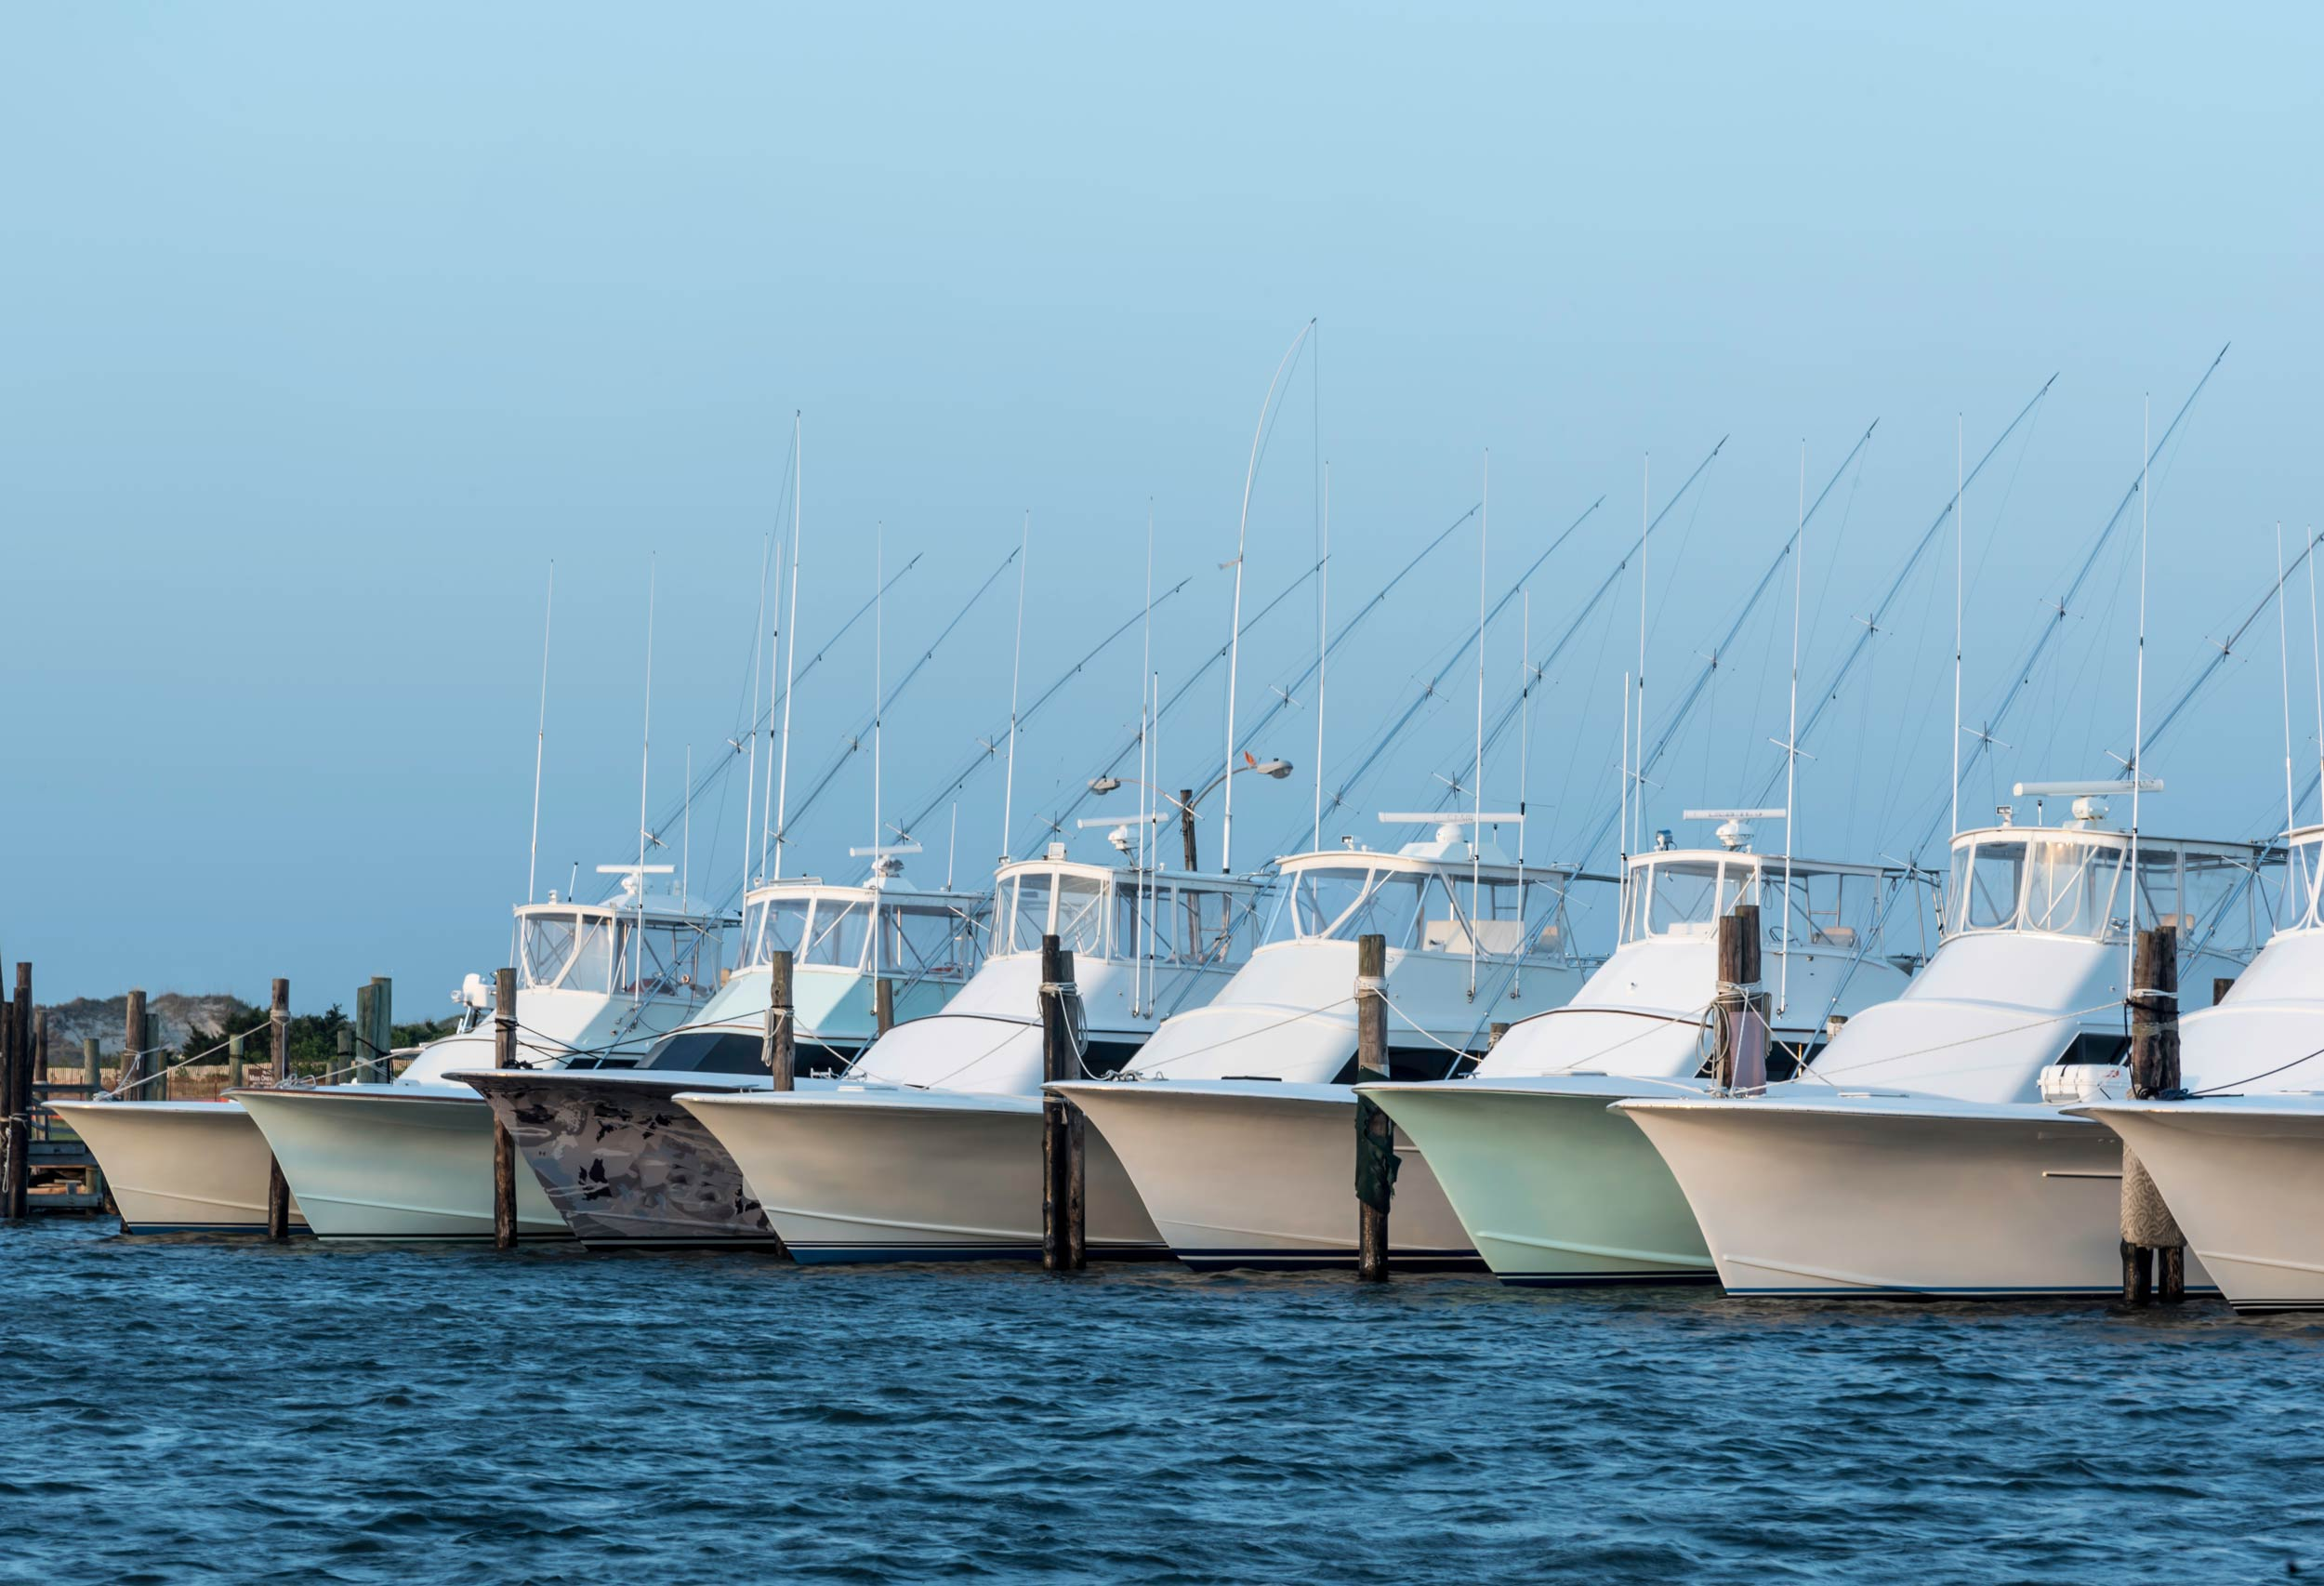 Fishing boats lined in a marina, ready for a fishing tournament